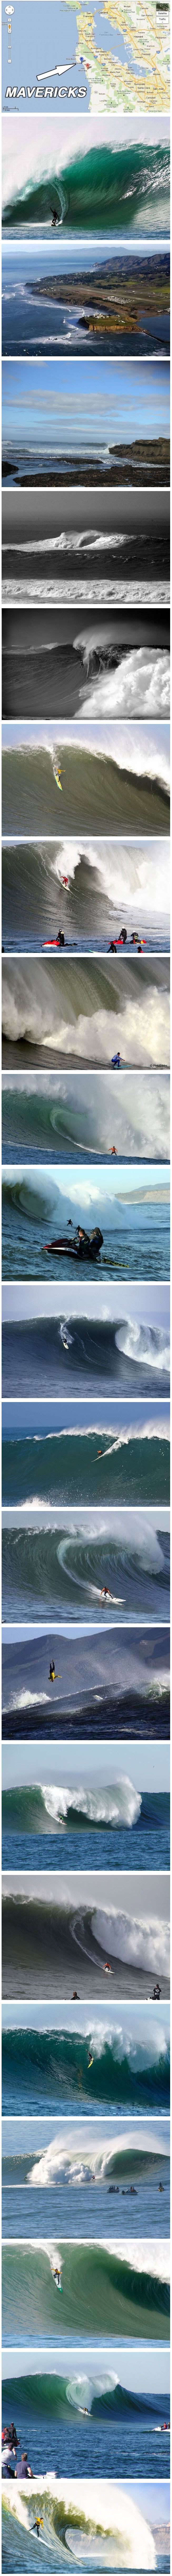 Mavericks | Half Moon Bay CA | I want photograph this and maybe get a pic with me and the person surfing it...or be the person to surf it